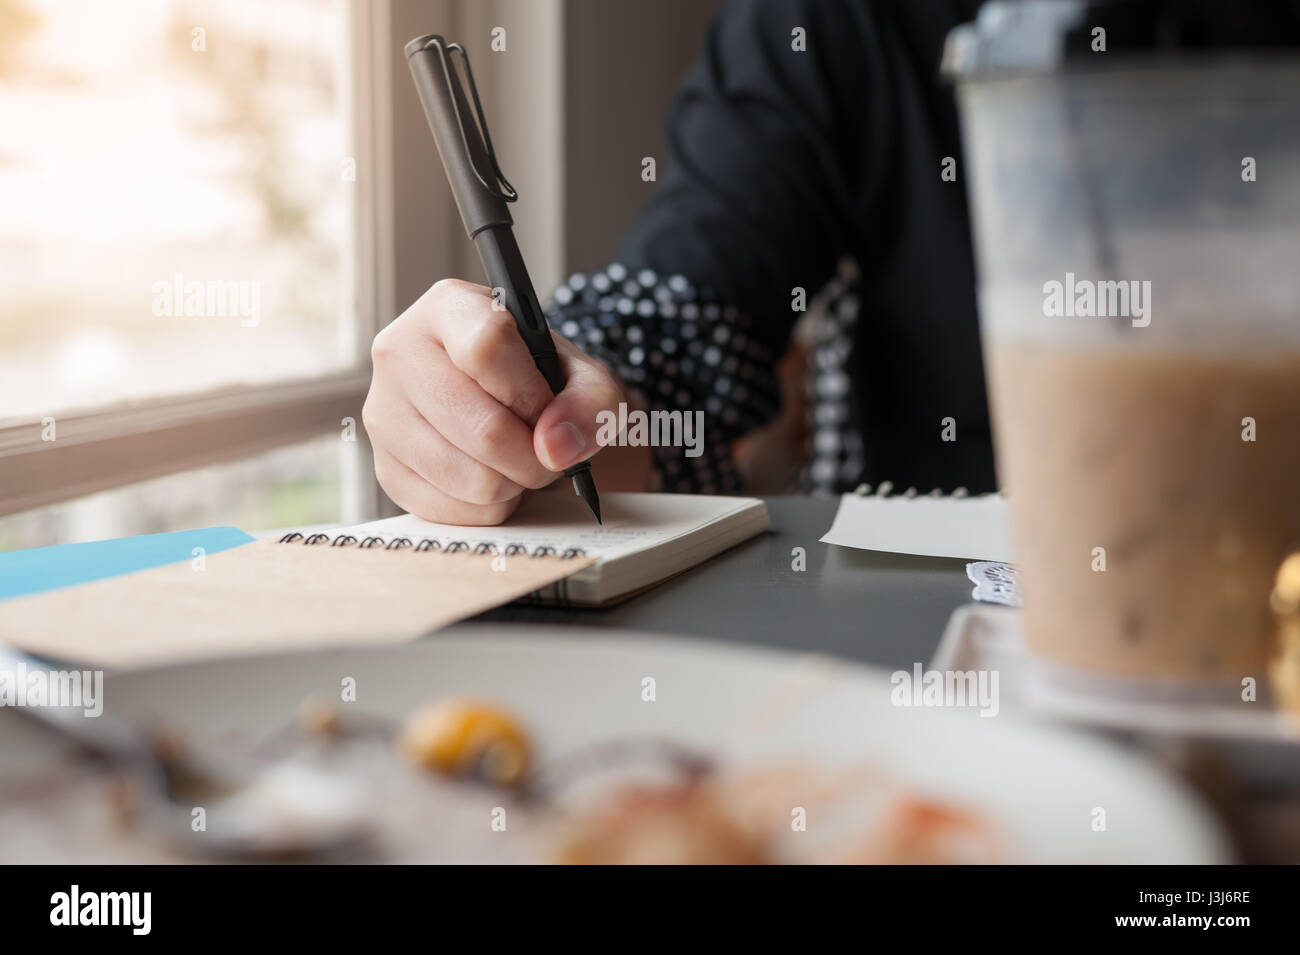 Woman hand holding pen while writing on small notebook beside window. Freelance journalist working at home concept. - Stock Image